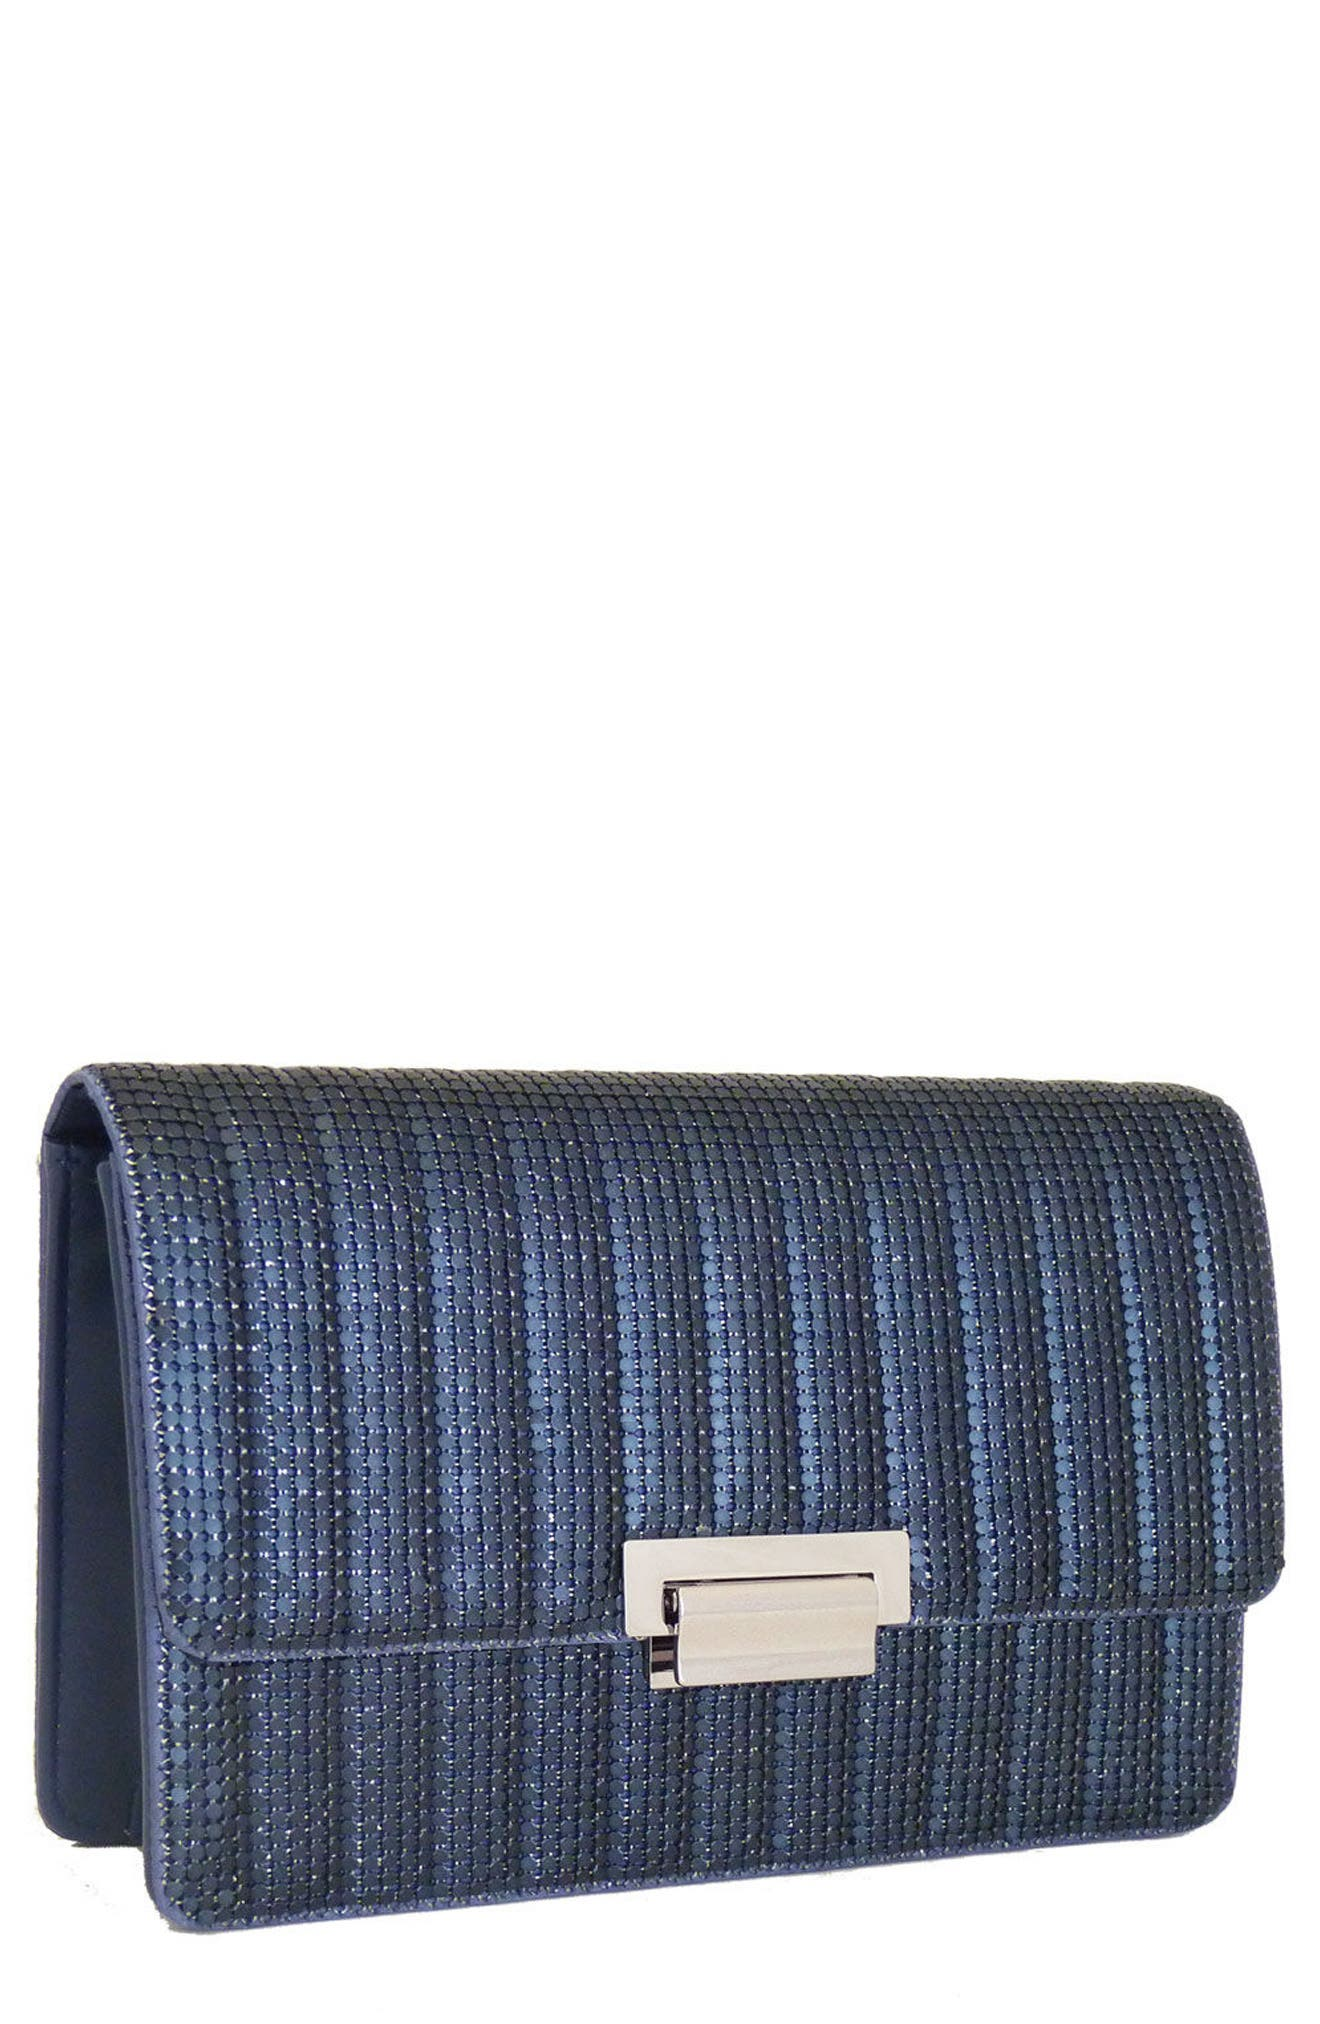 Sydney Quilted Clutch,                         Main,                         color, Midnight